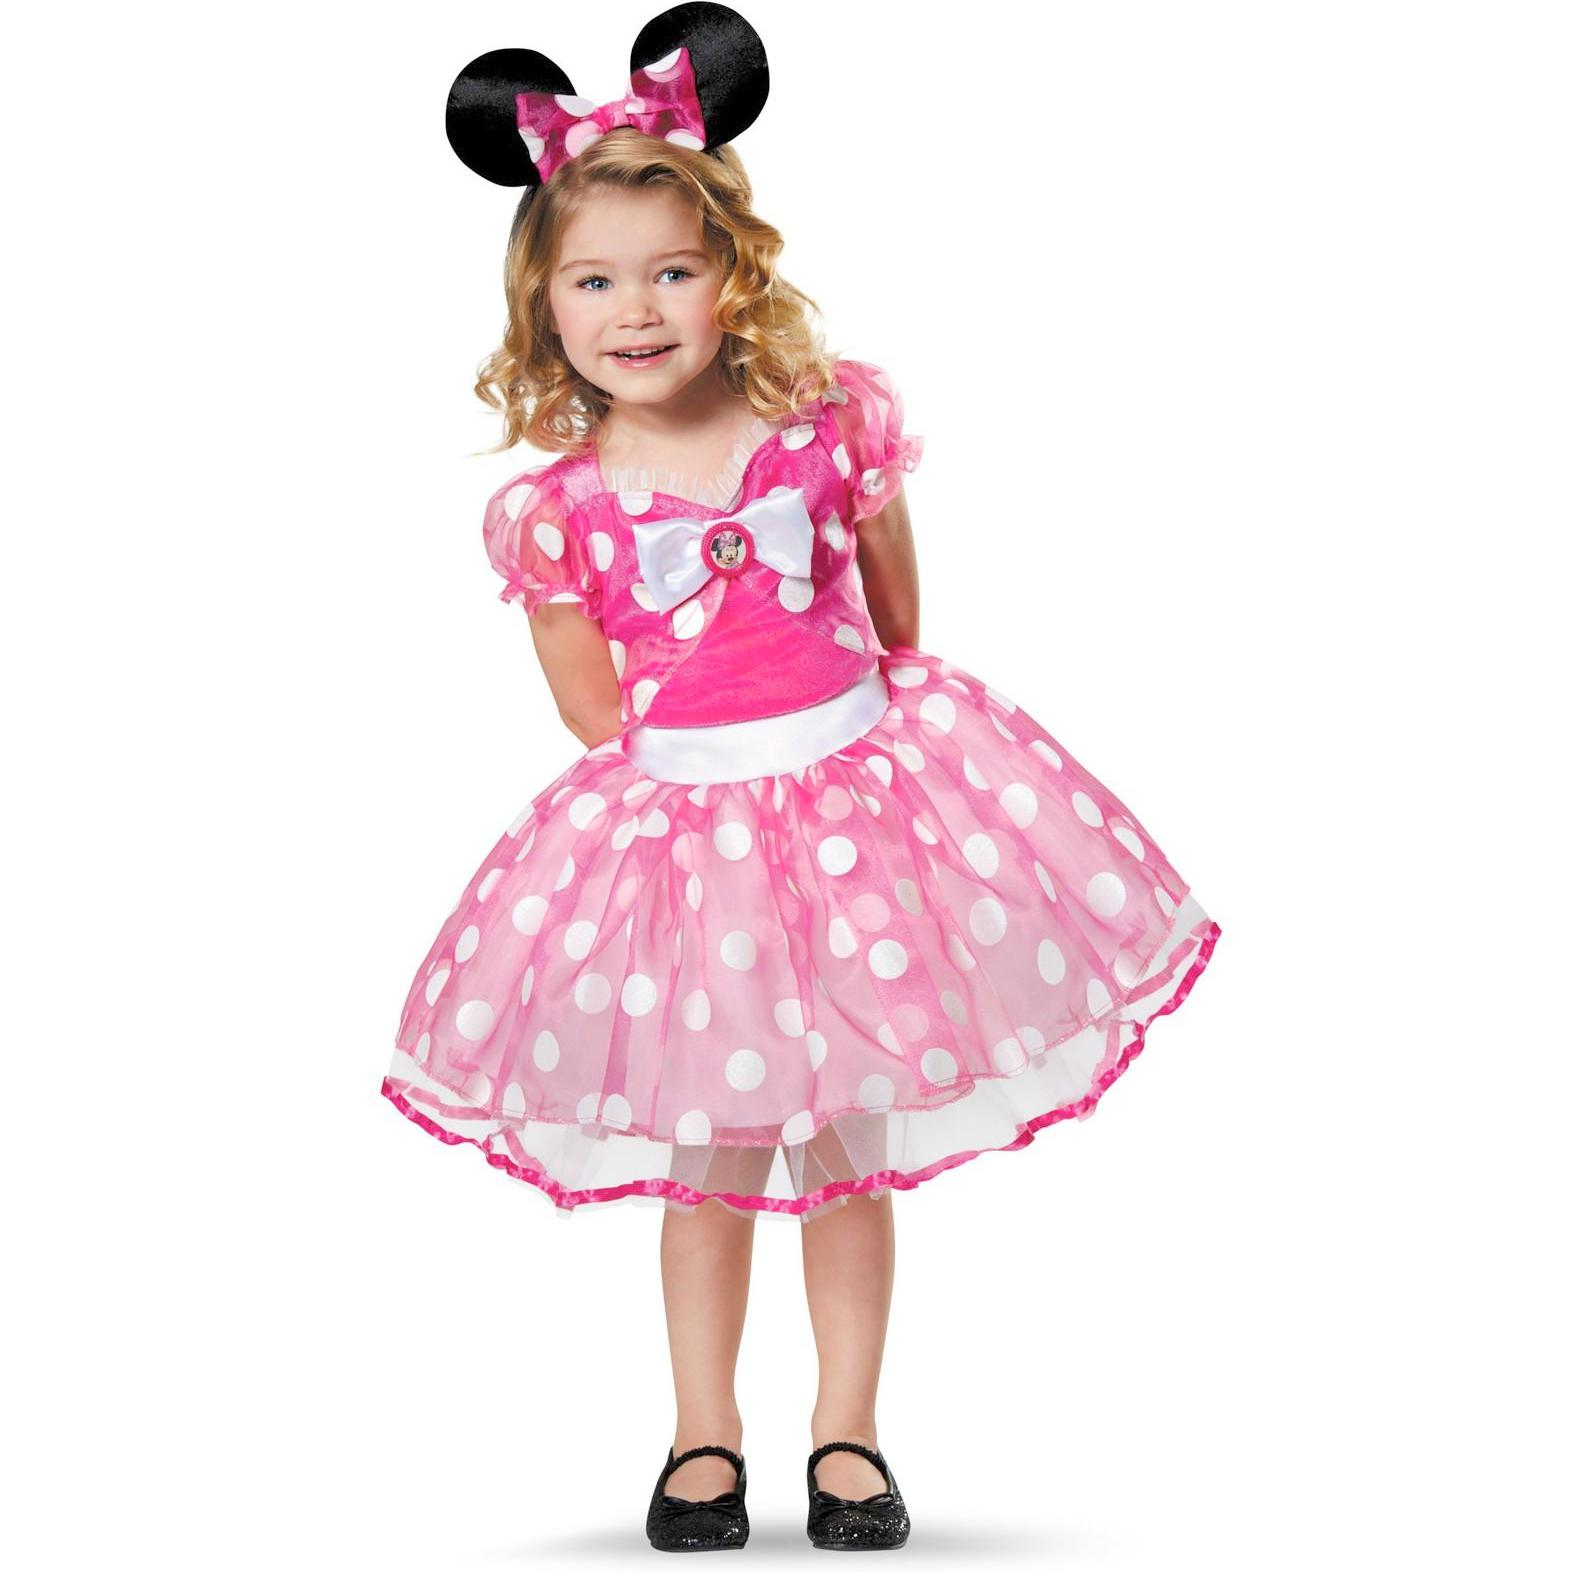 Online Minnie Mouse Outfits for Toddlers